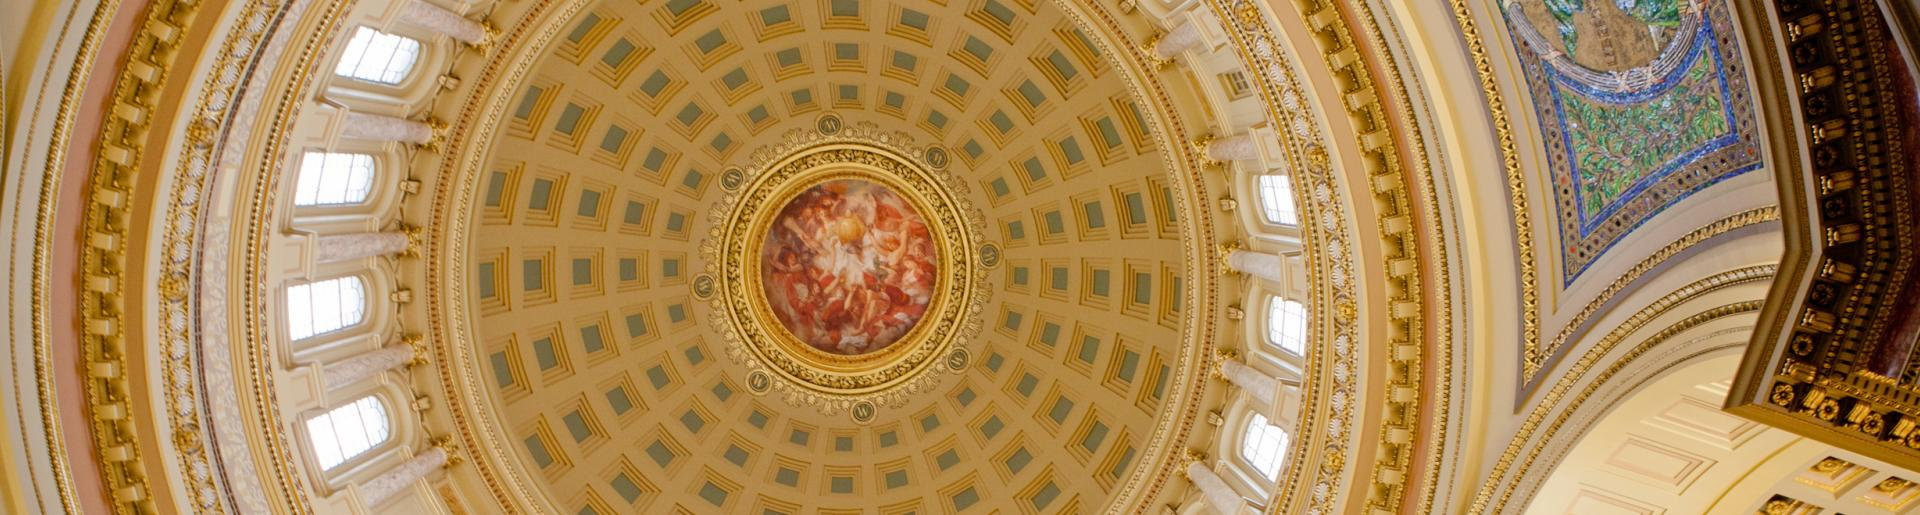 Interior of State Capitol Dome